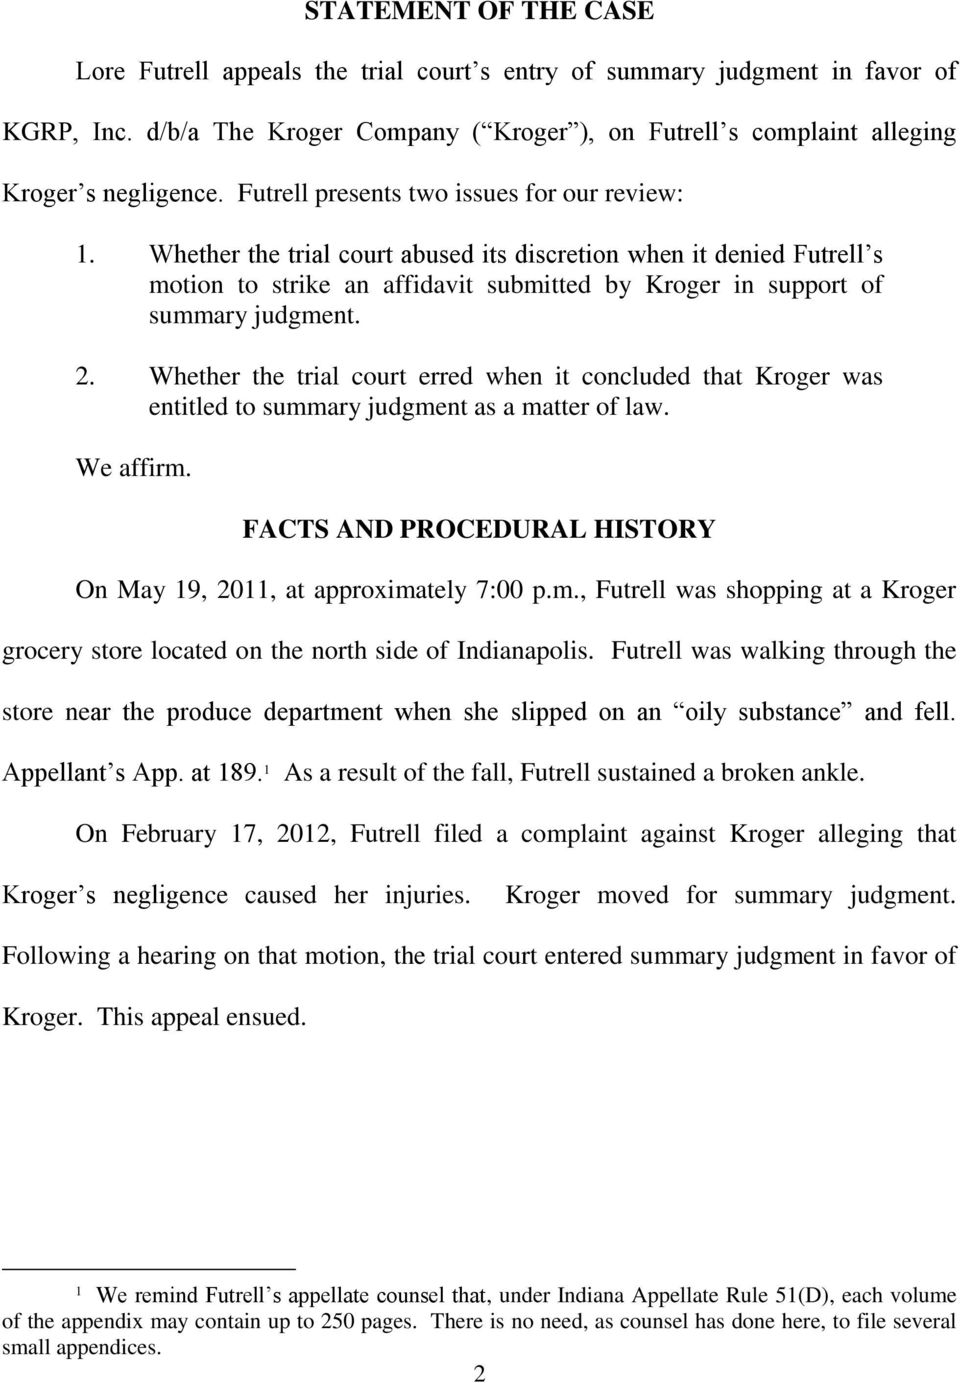 2. Whether the trial court erred when it concluded that Kroger was entitled to summary judgment as a matter of law. We affirm. FACTS AND PROCEDURAL HISTORY On May 19, 2011, at approximately 7:00 p.m., Futrell was shopping at a Kroger grocery store located on the north side of Indianapolis.